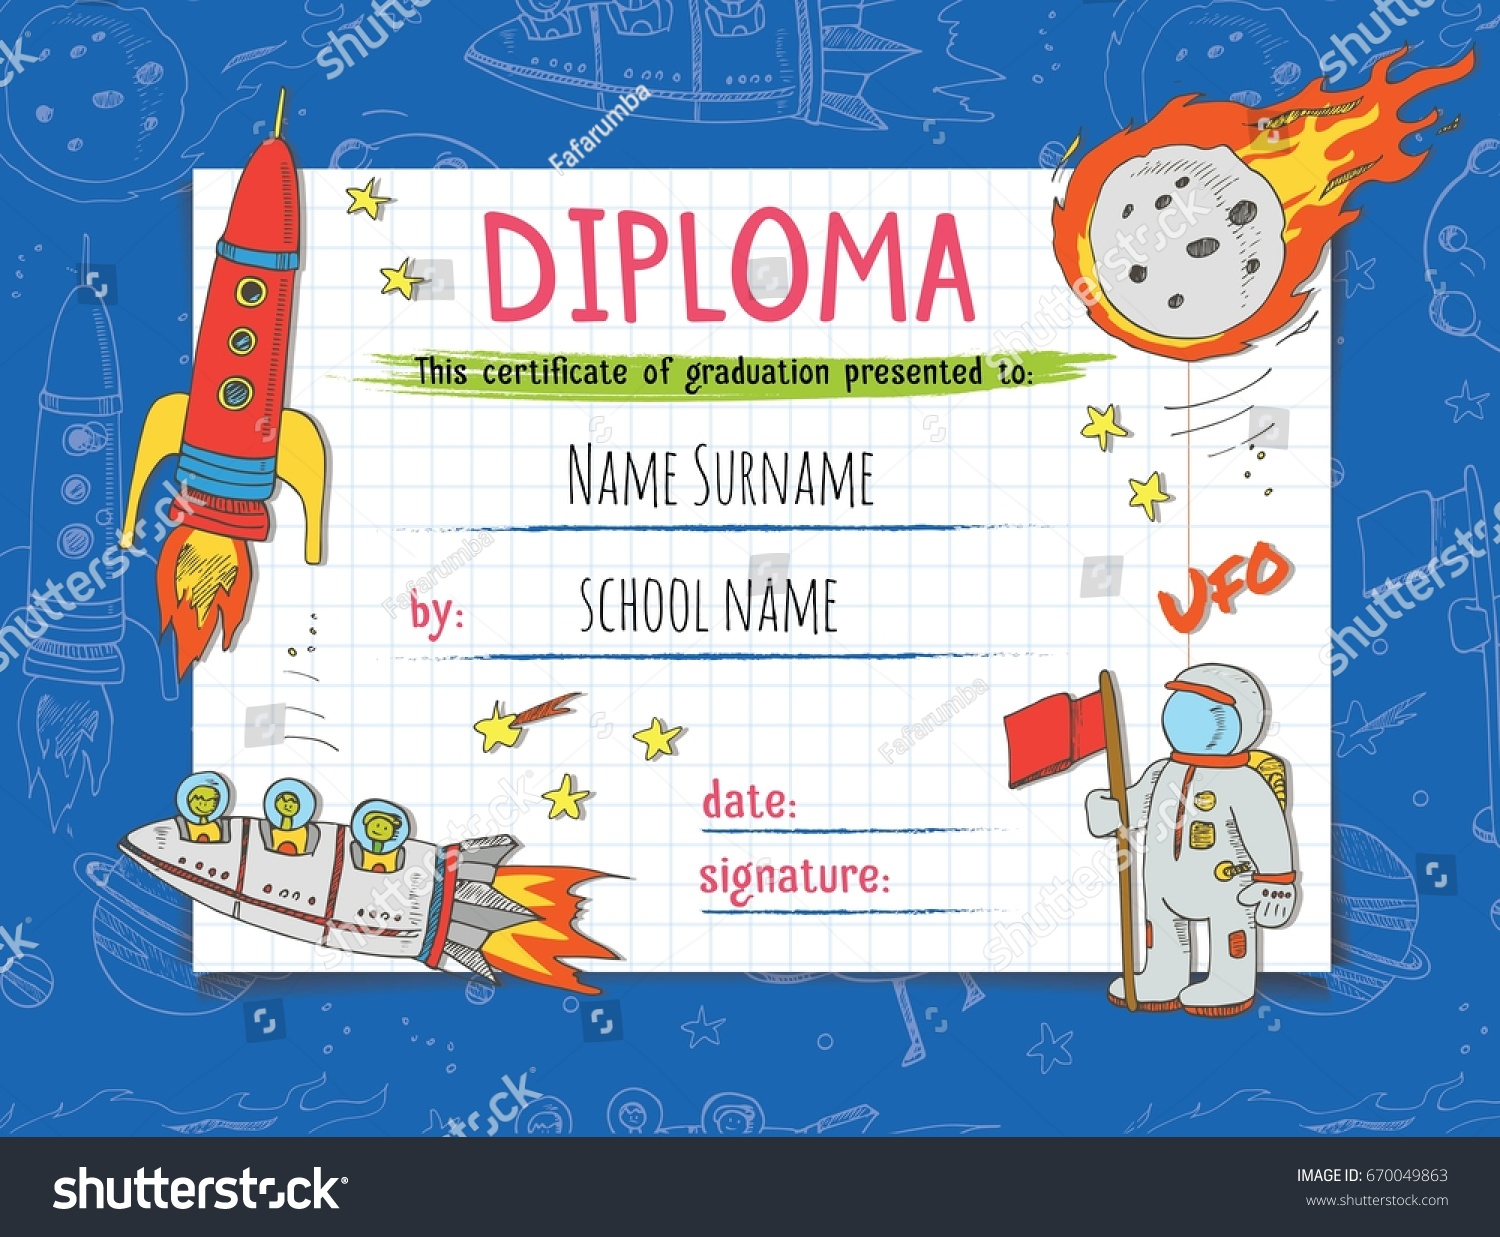 Diploma template kids certificate background hand stock vector diploma template for kids certificate background with hand drawn colorful stars spaceship stars xflitez Images